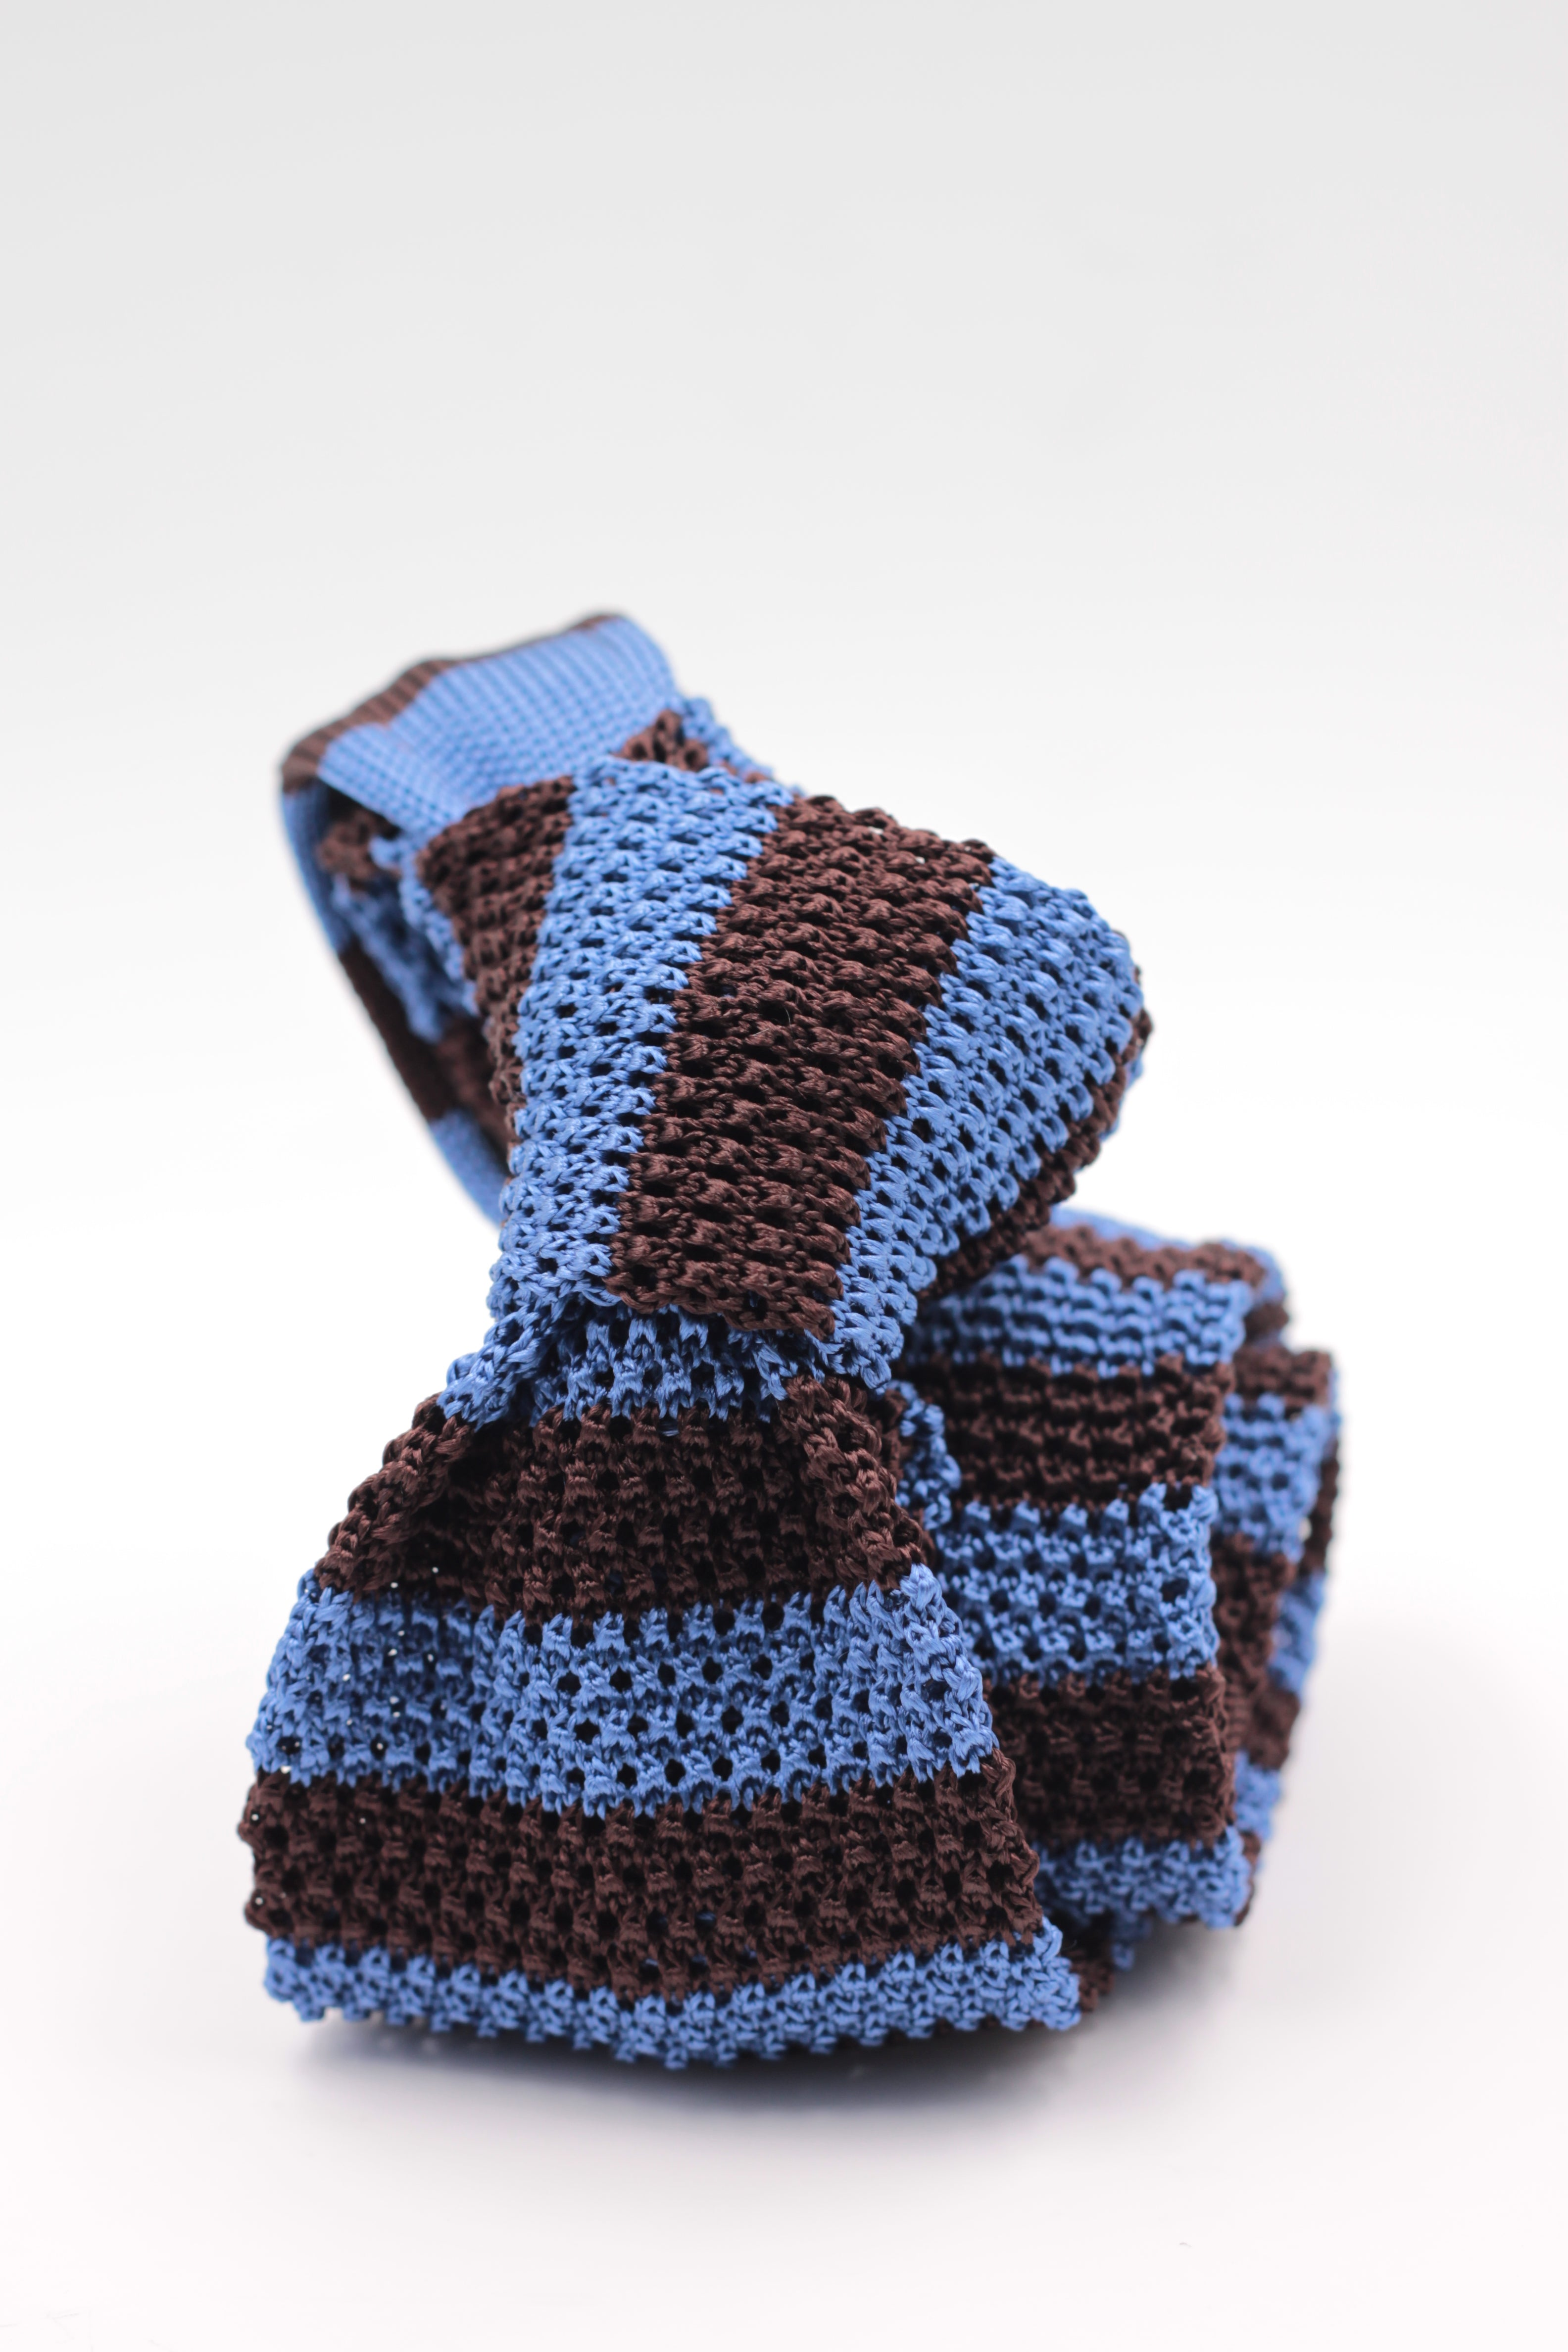 Cruciani & Bella 100% Knitted Silk Light Blue and Brown stripe tie Handmade in Italy 6 cm x 147 cm